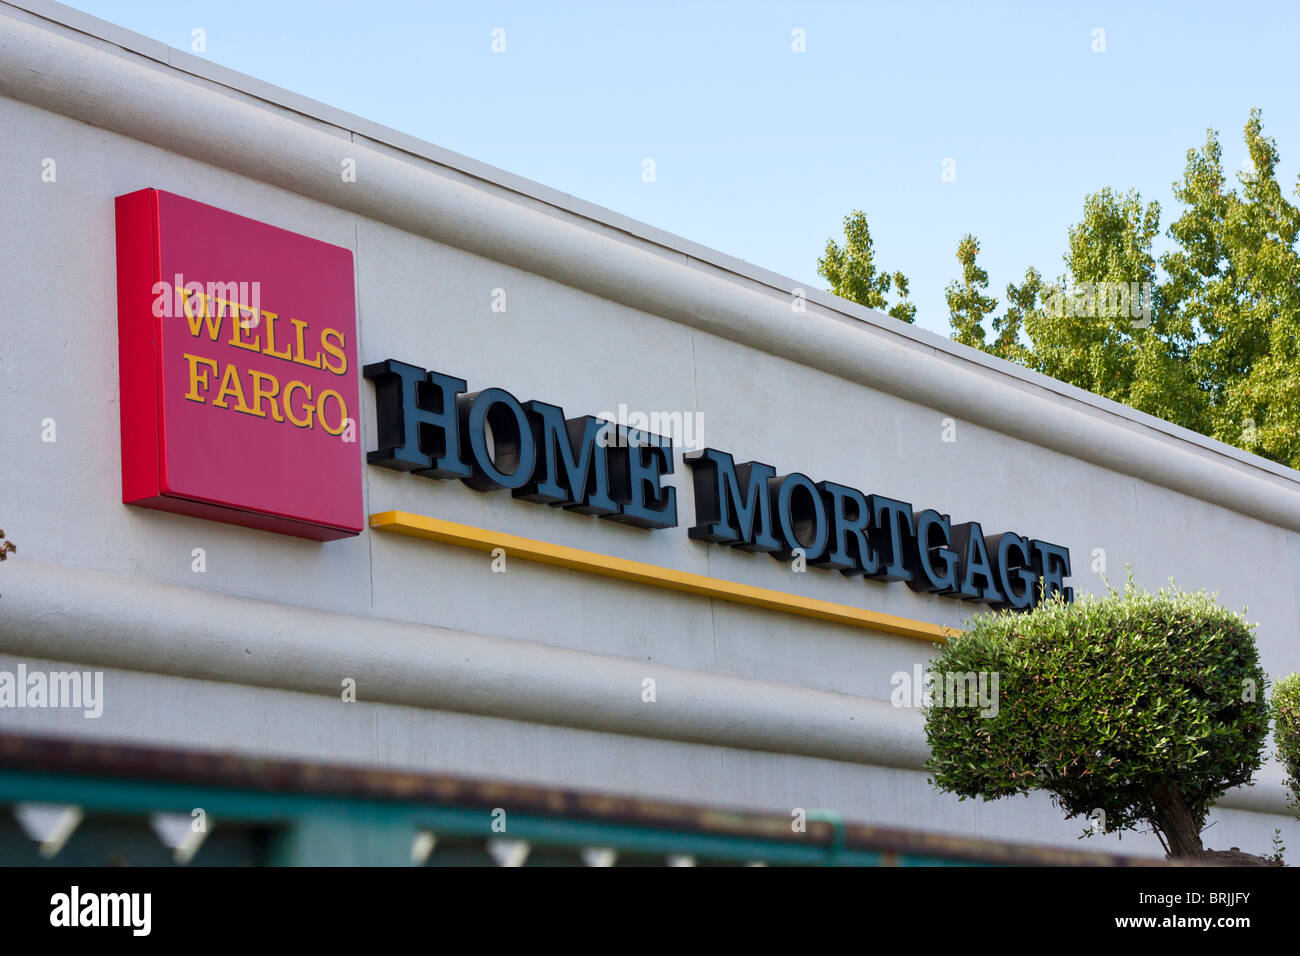 Wells Fargo Home Mortgage office - Stock Image